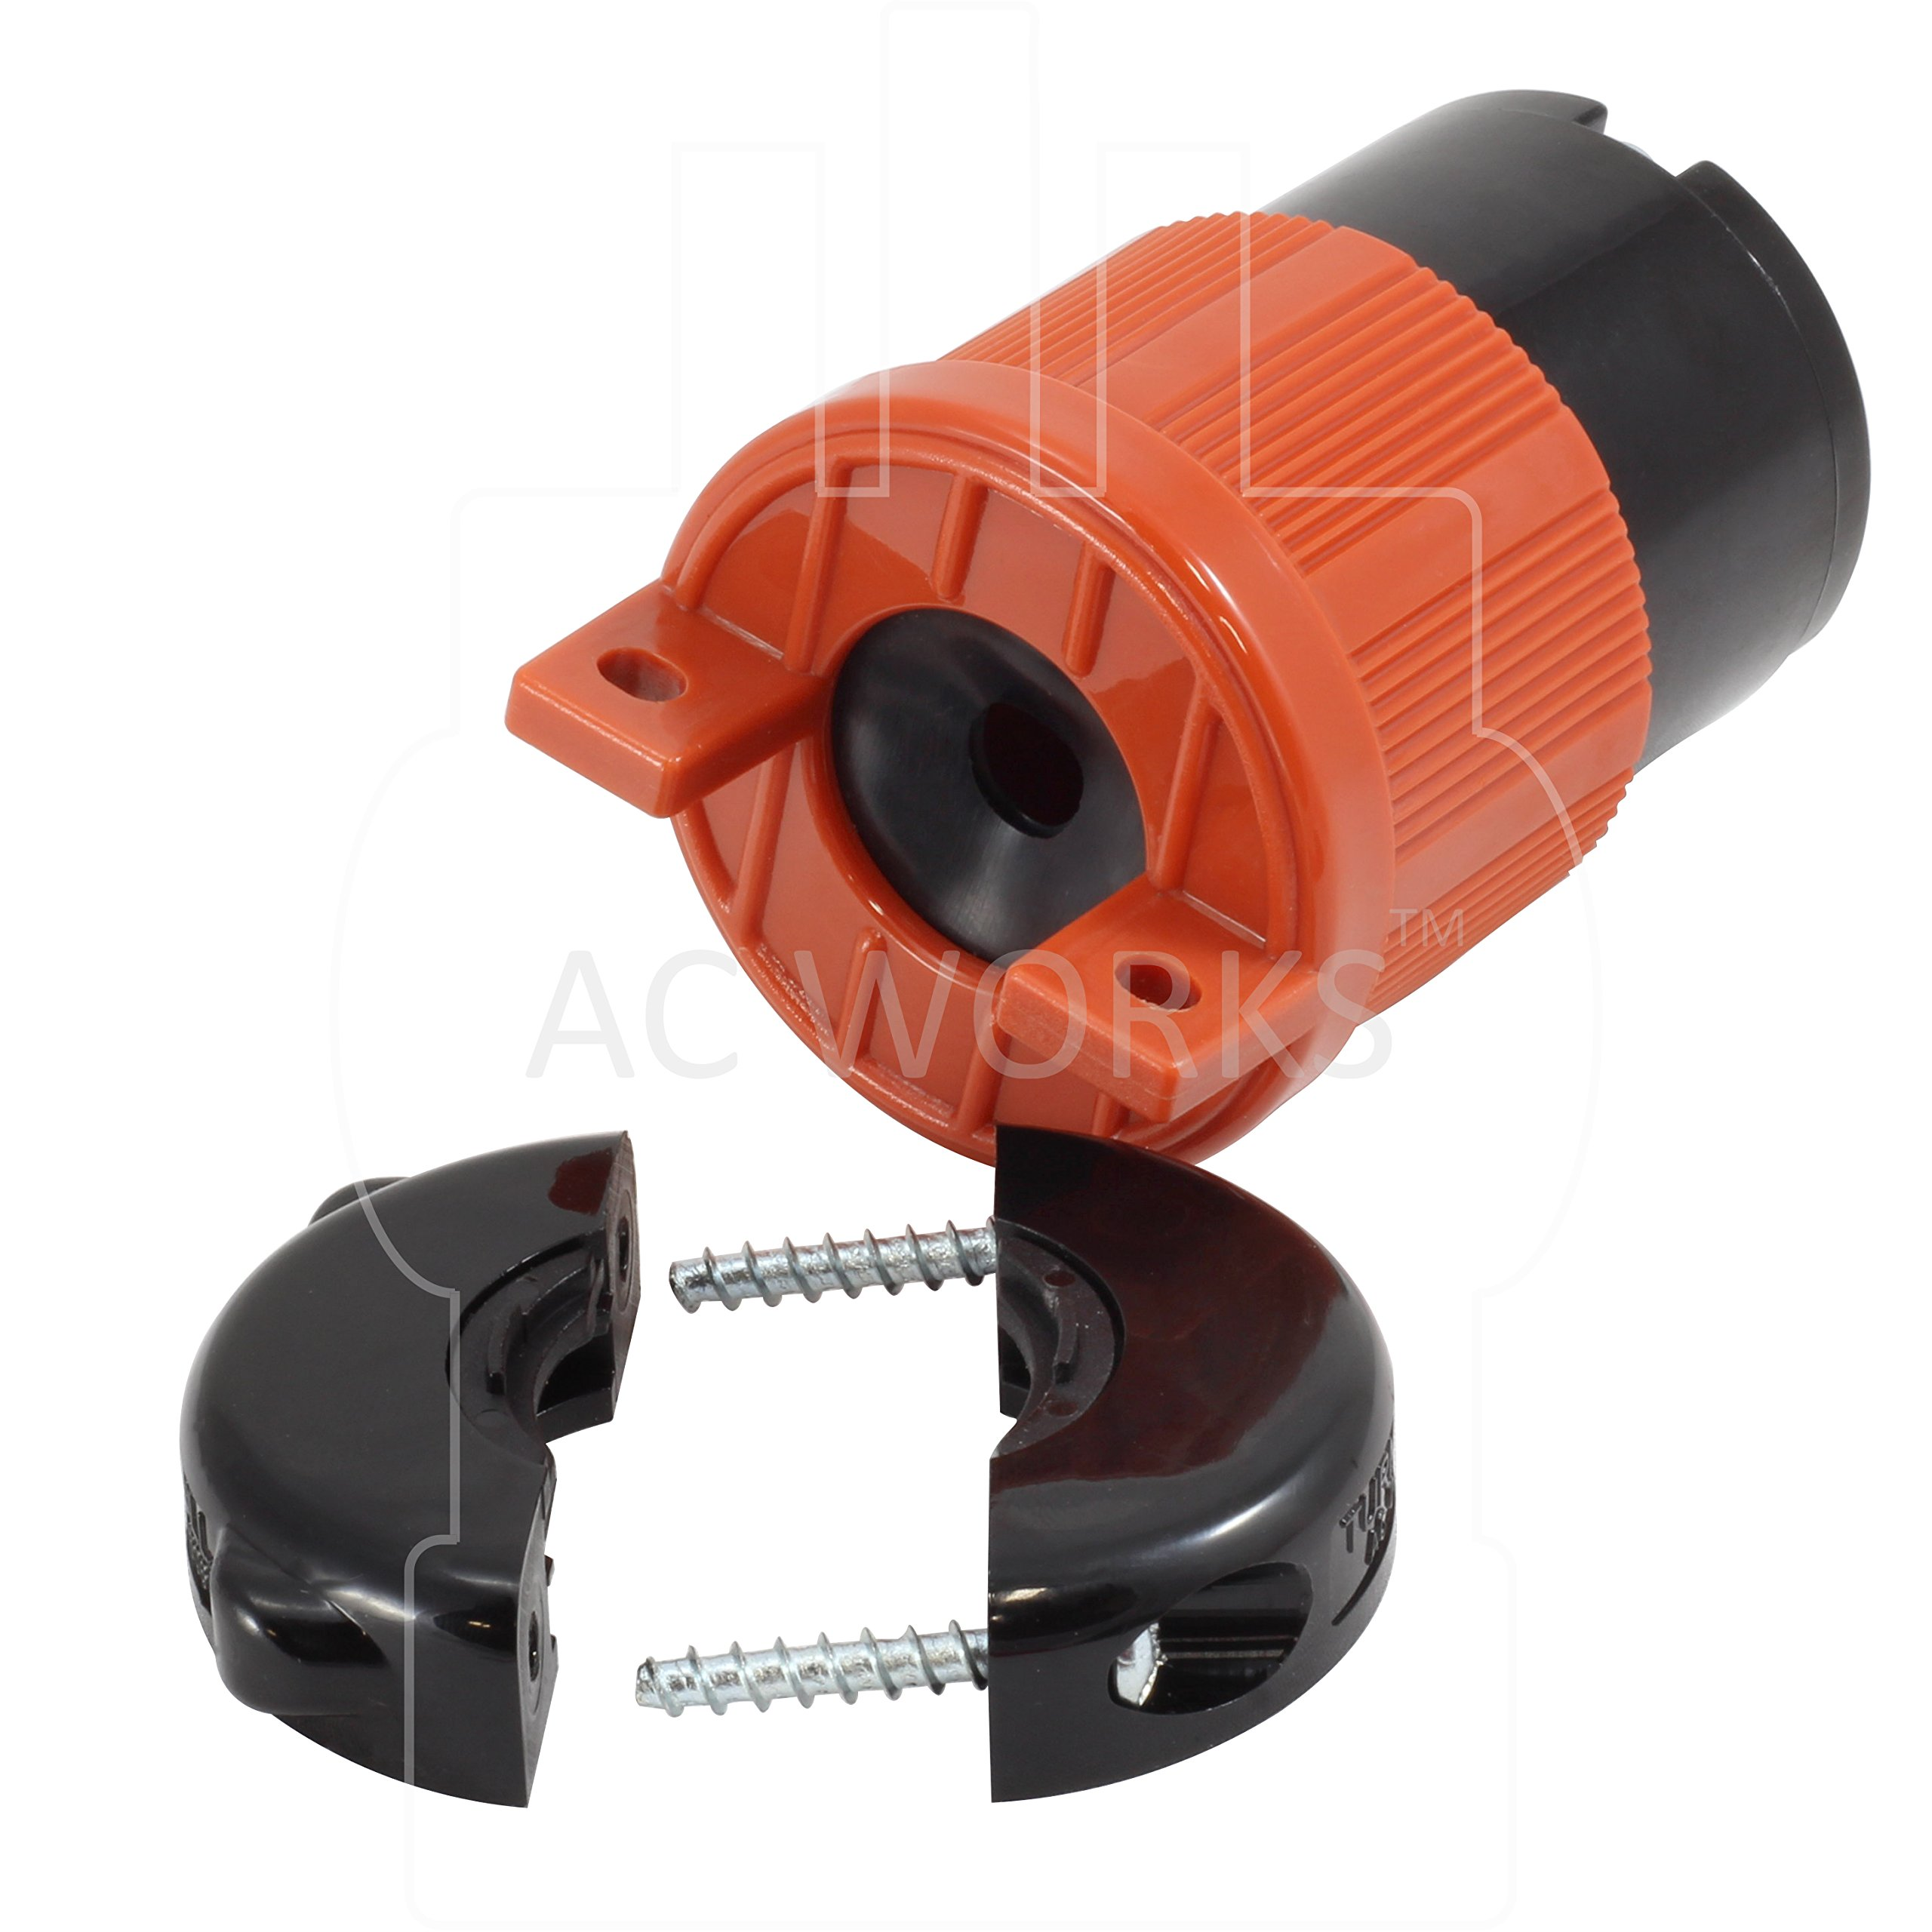 AC WORKS [ASL620R] NEMA L6-20R 20Amp 250Volt 3 Prong Locking Female Connector With UL, C-UL Approval by AC WORKS (Image #4)